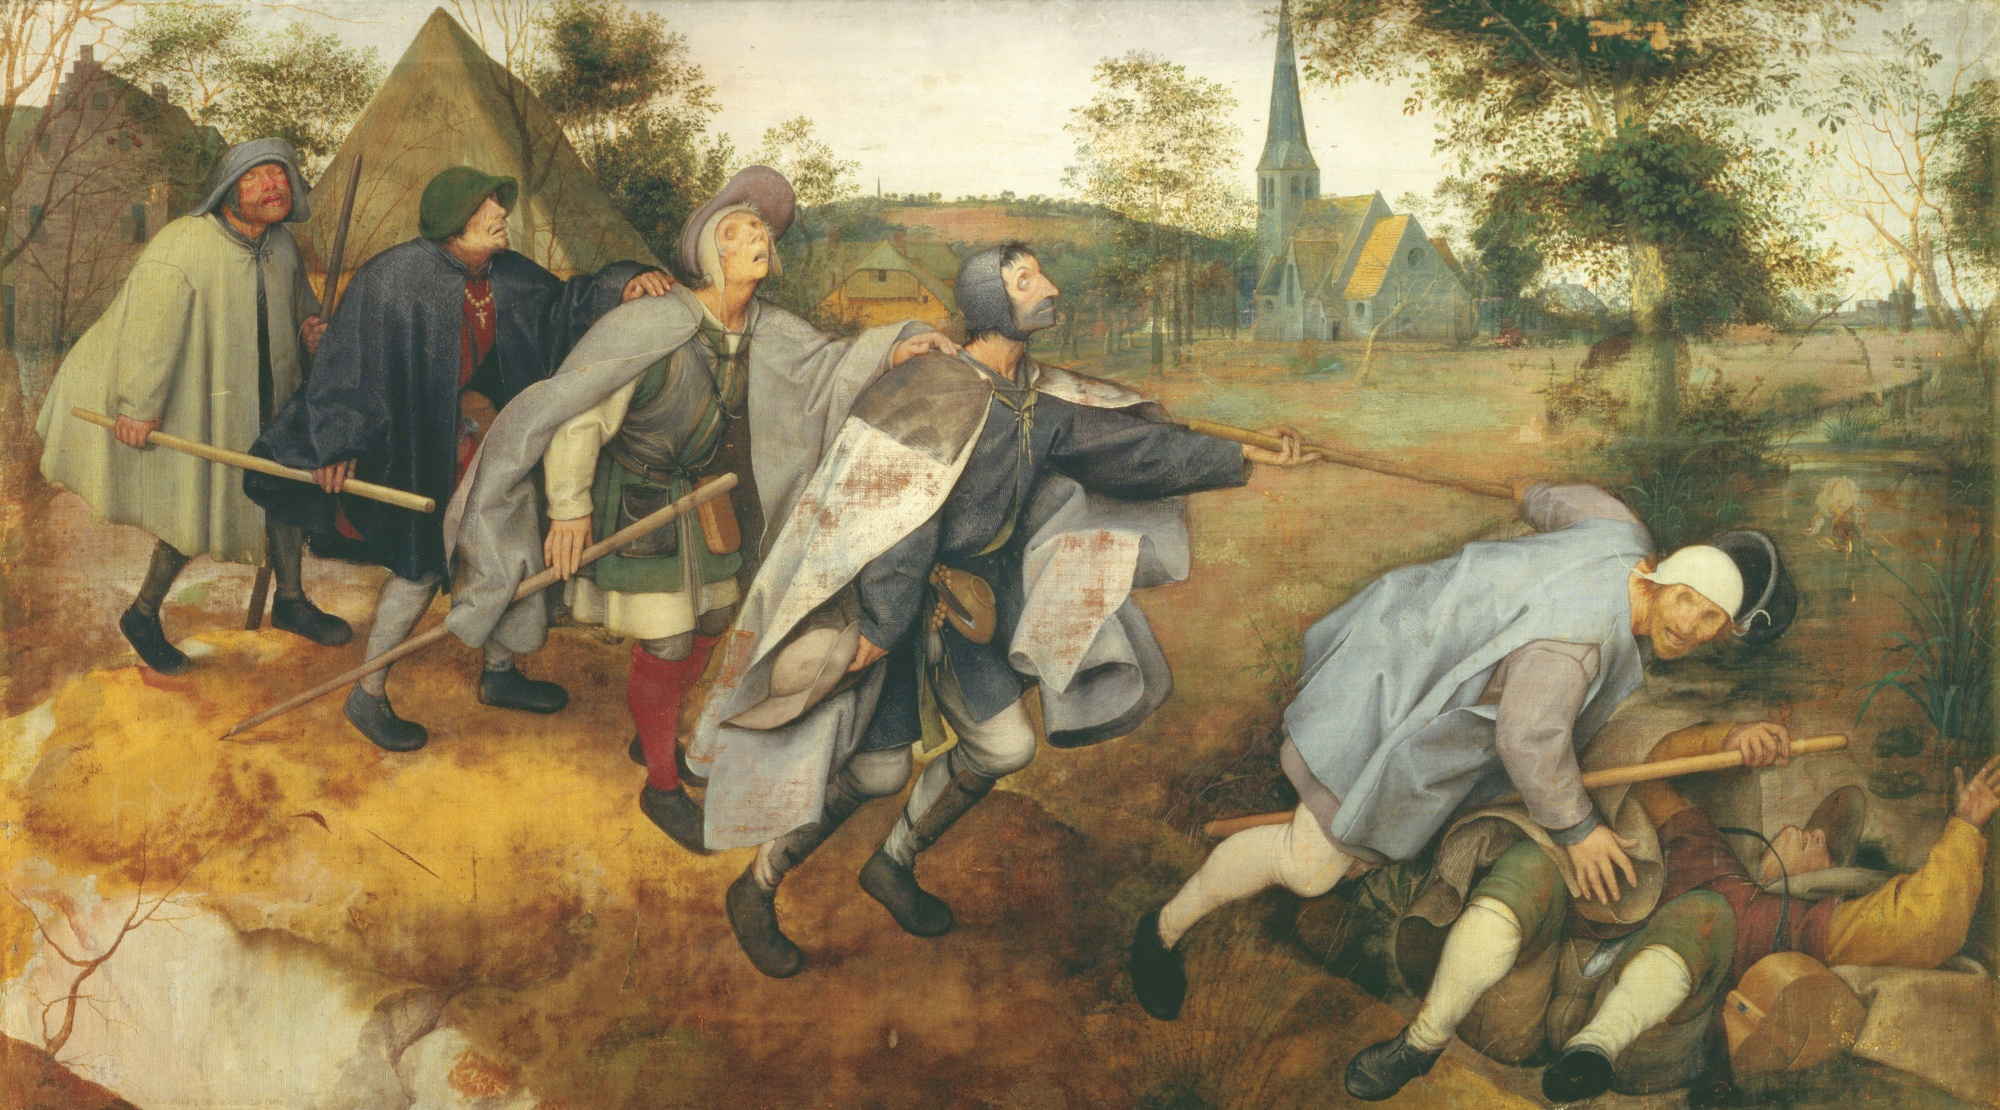 http://upload.wikimedia.org/wikipedia/commons/2/2f/Pieter_Bruegel_the_Elder_(1568)_The_Blind_Leading_the_Blind.jpg